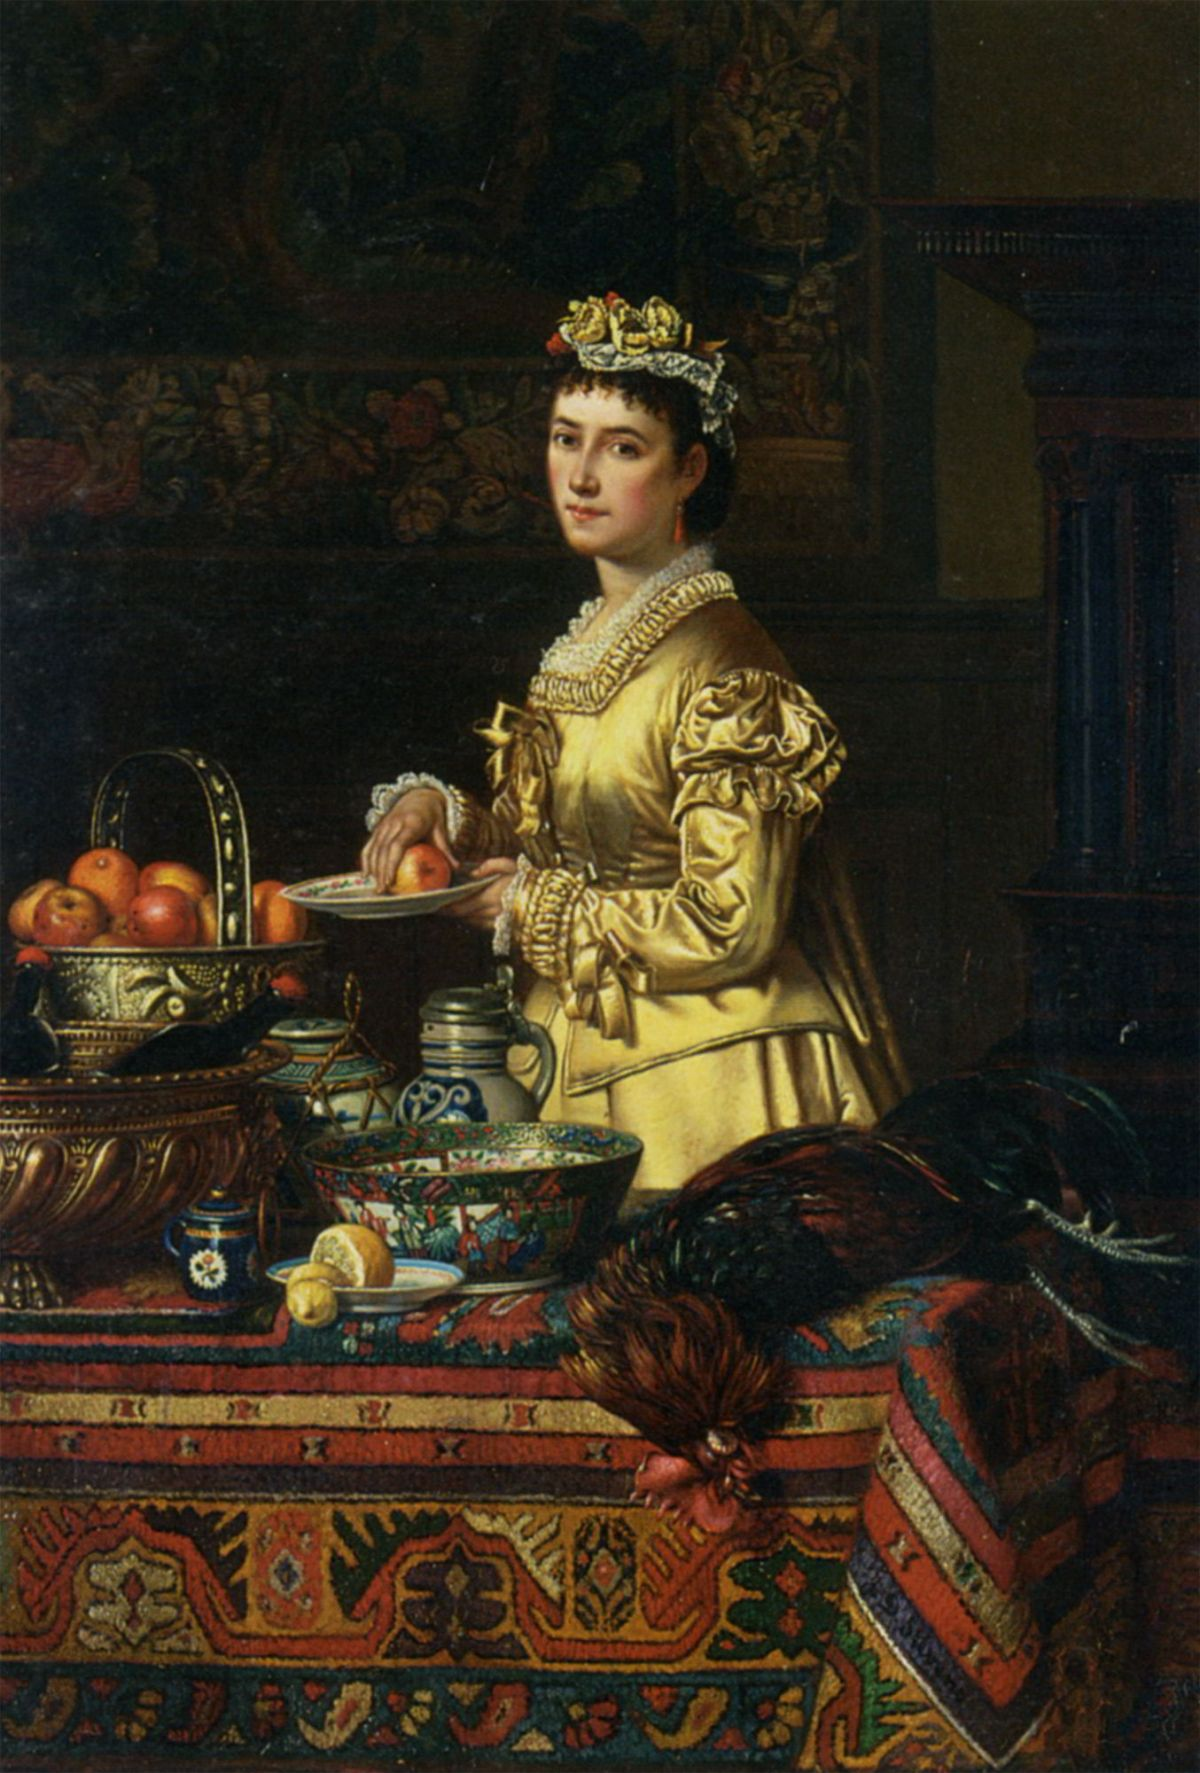 An interior with an elegent lady standing by a kitchen by Jean-Daniel Stevens